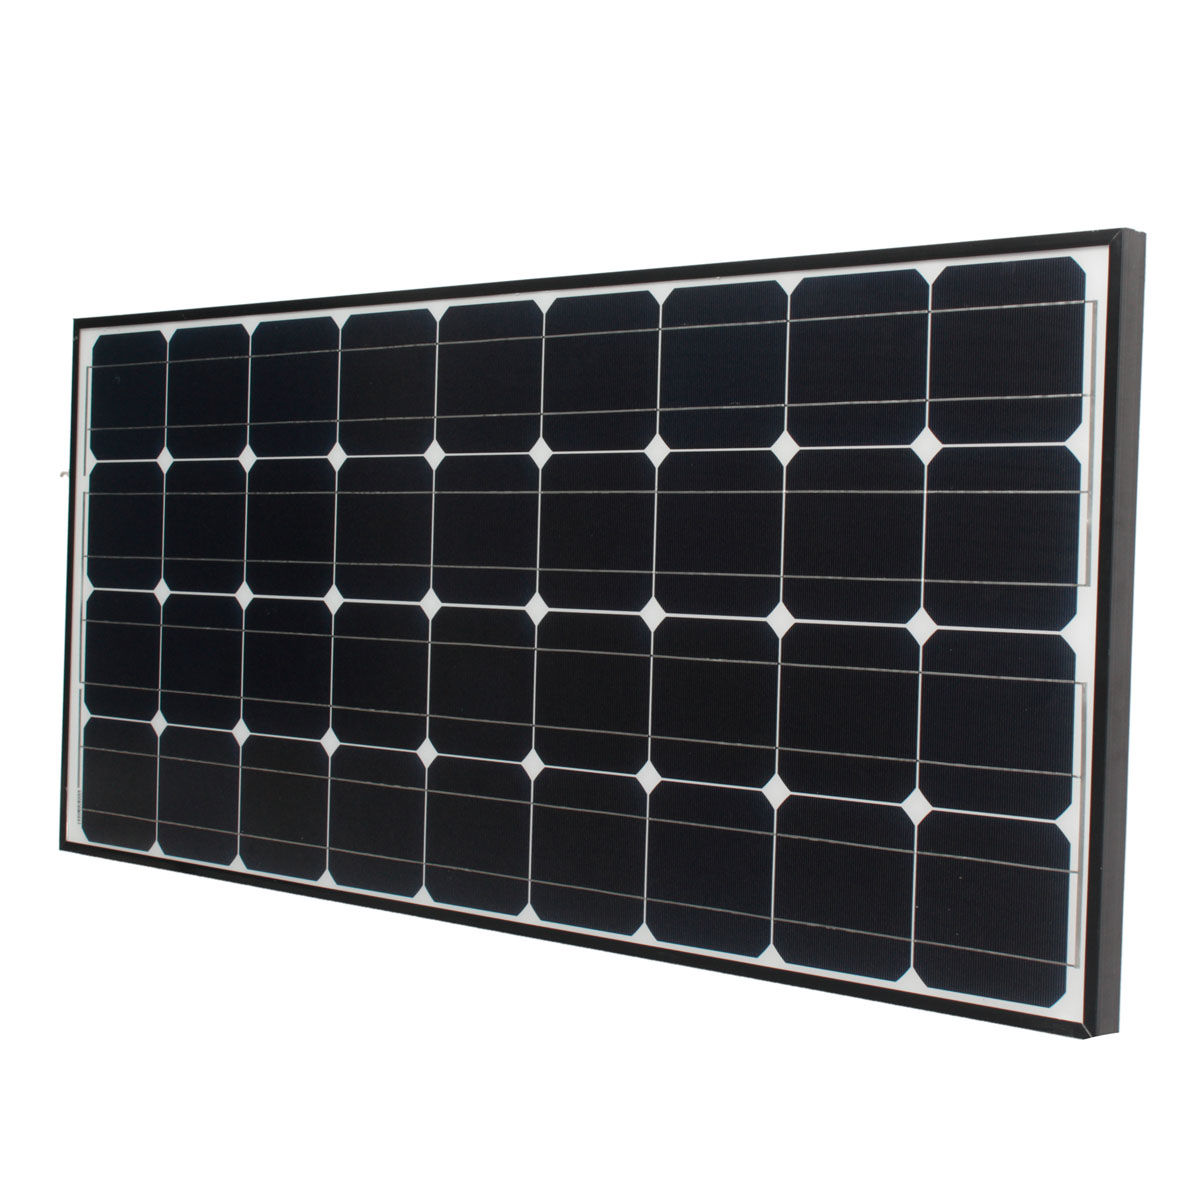 KINCO 18V 20W Monocrystalline Silicon Solar Panels With Silver/Black Frame High Conversion Efficiency DIy Solar Panel Battery diy photovoltaic panels durable 20w solar cells charging 18v solar panel